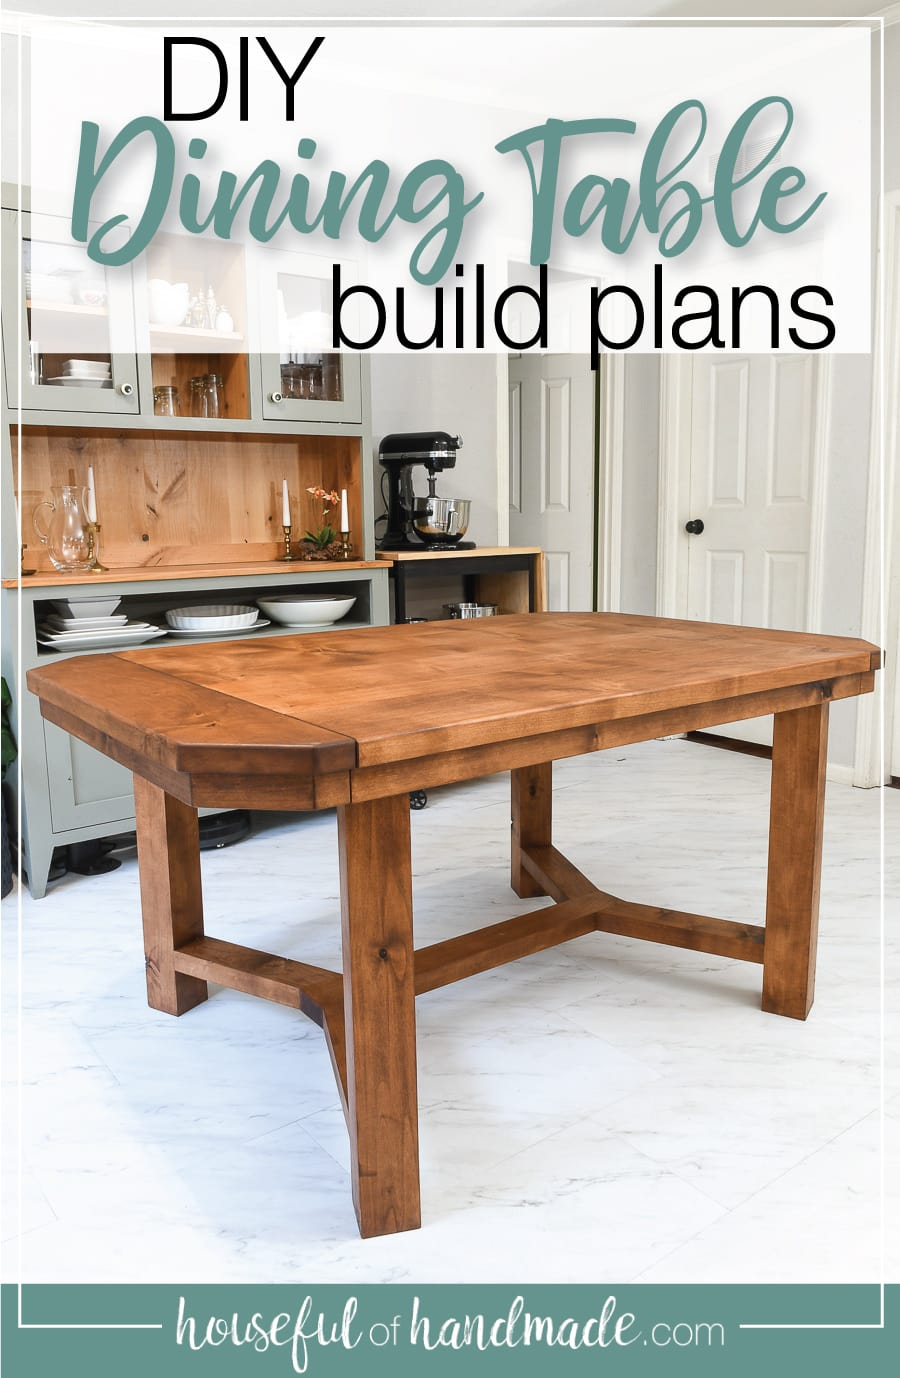 DIY dining room table in a dining room with a hutch in the background with text overlay: DIY Dining table build plans.